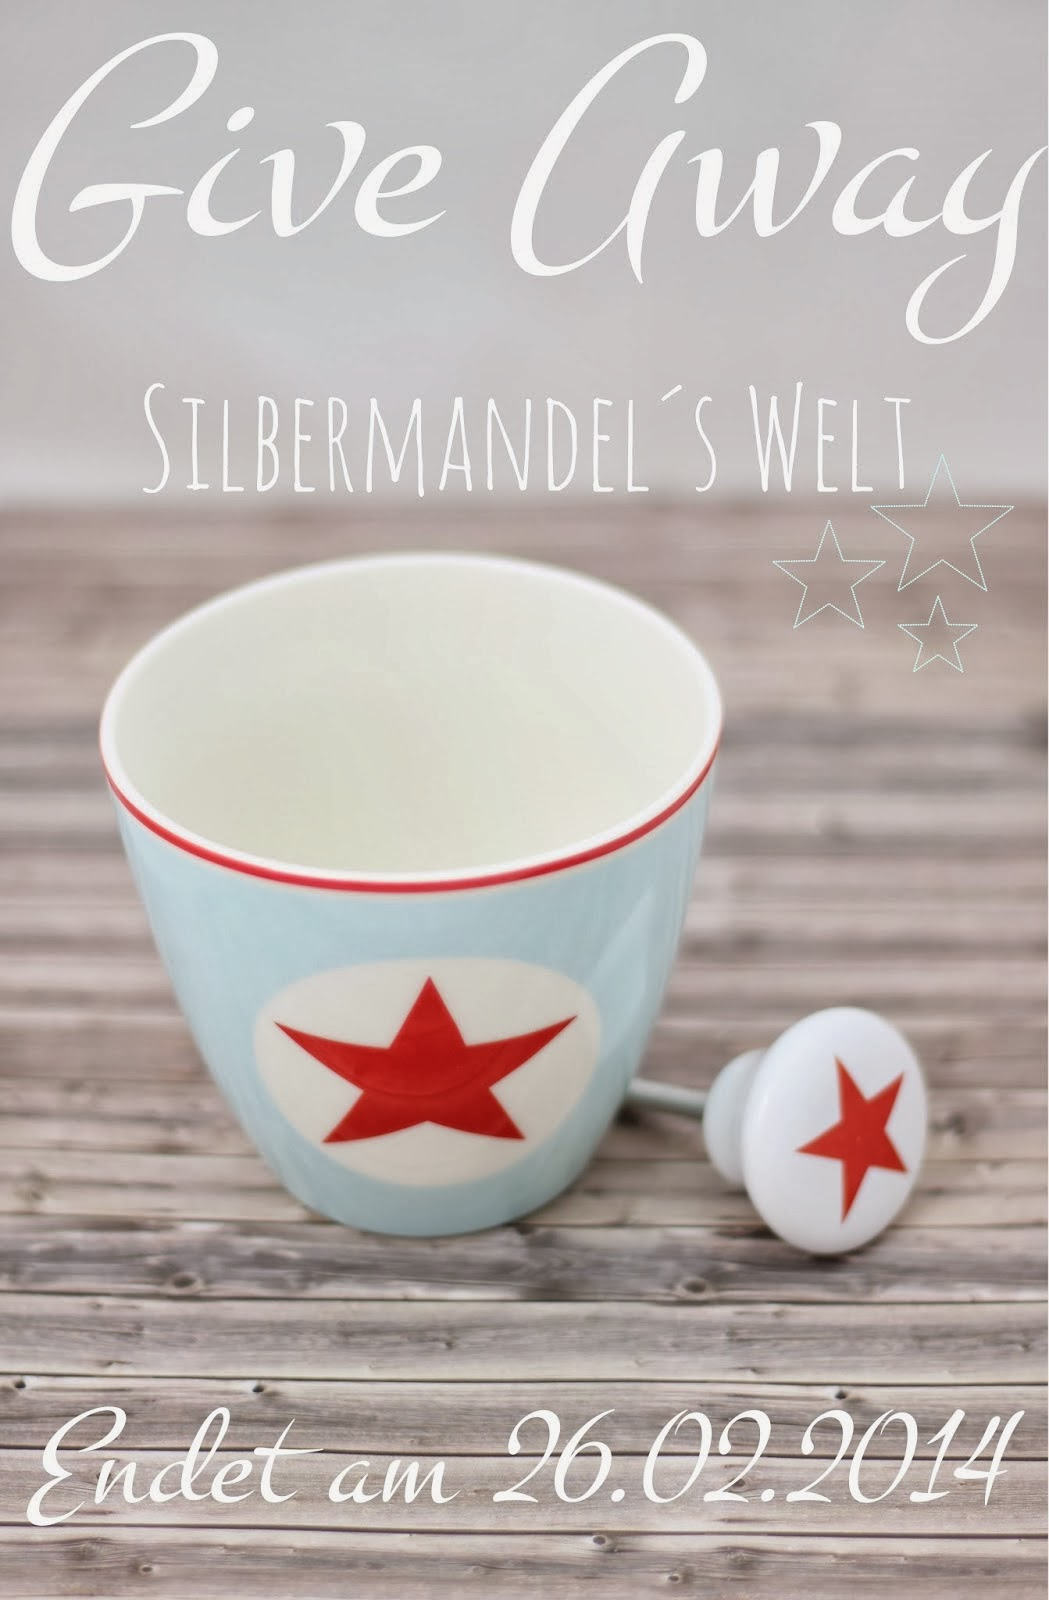 Give away bei Silbermandels Welt